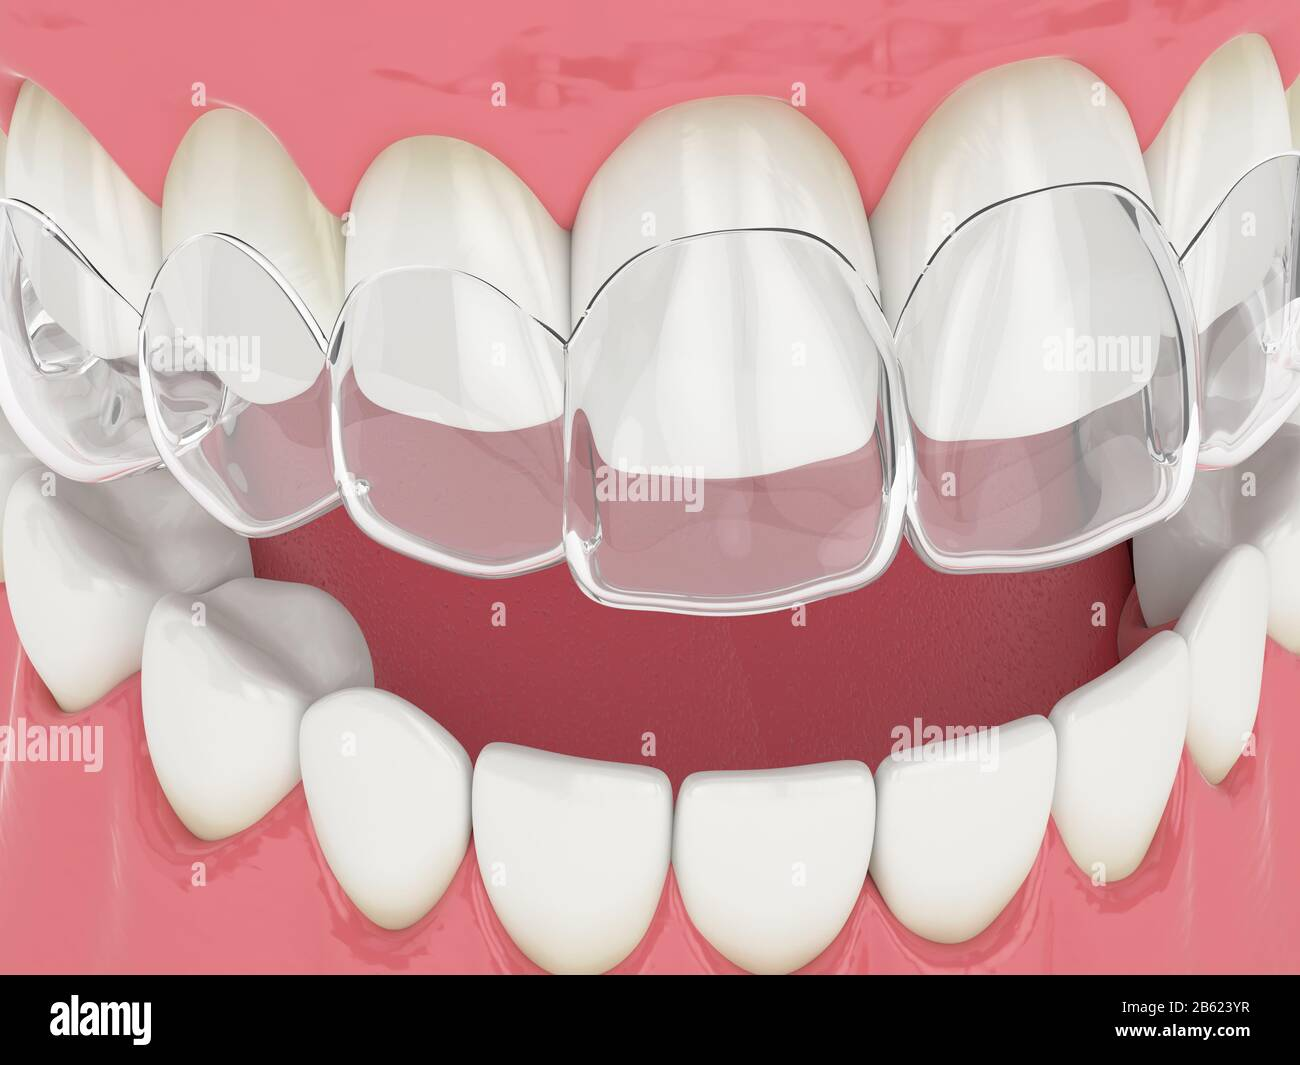 3d render of upper jaw with invisalign removable retainer Stock Photo